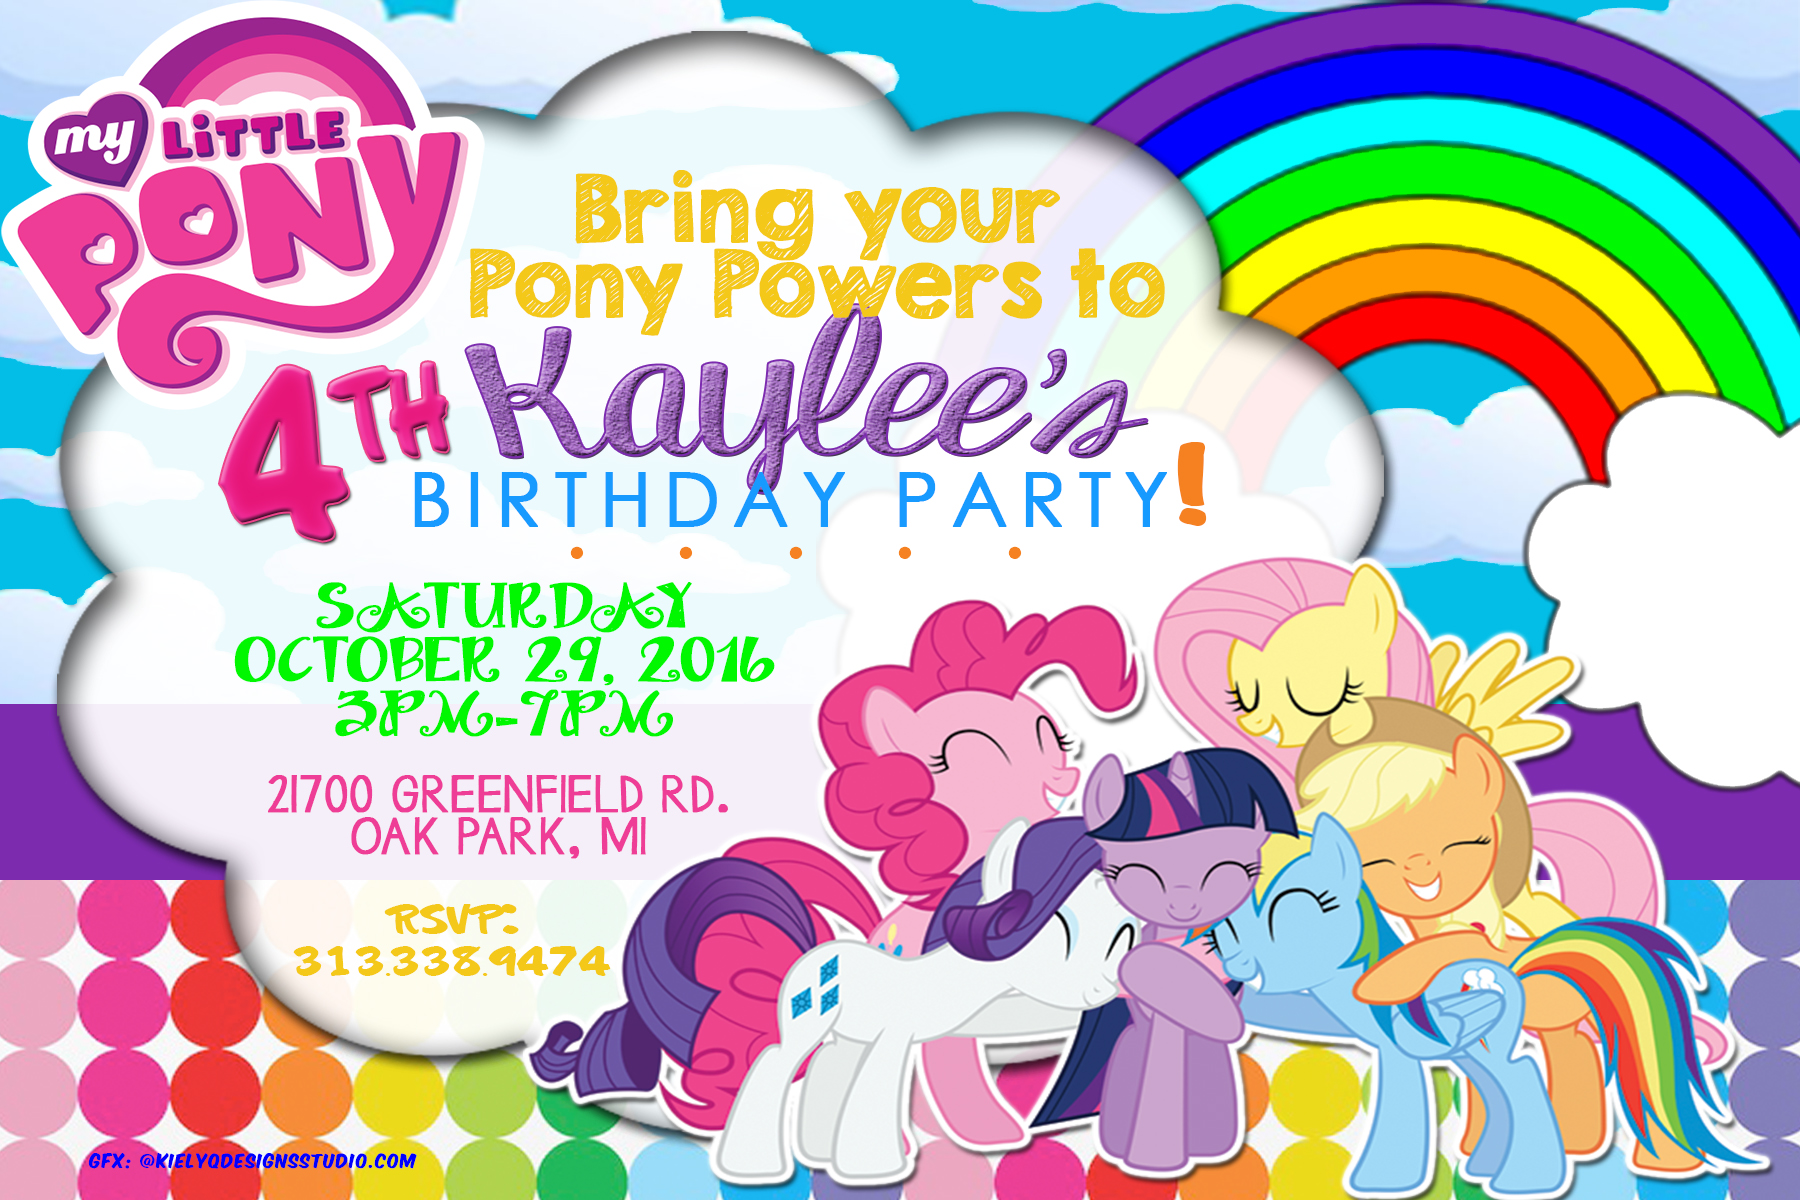 My Little Pony Party InvitationFlyer